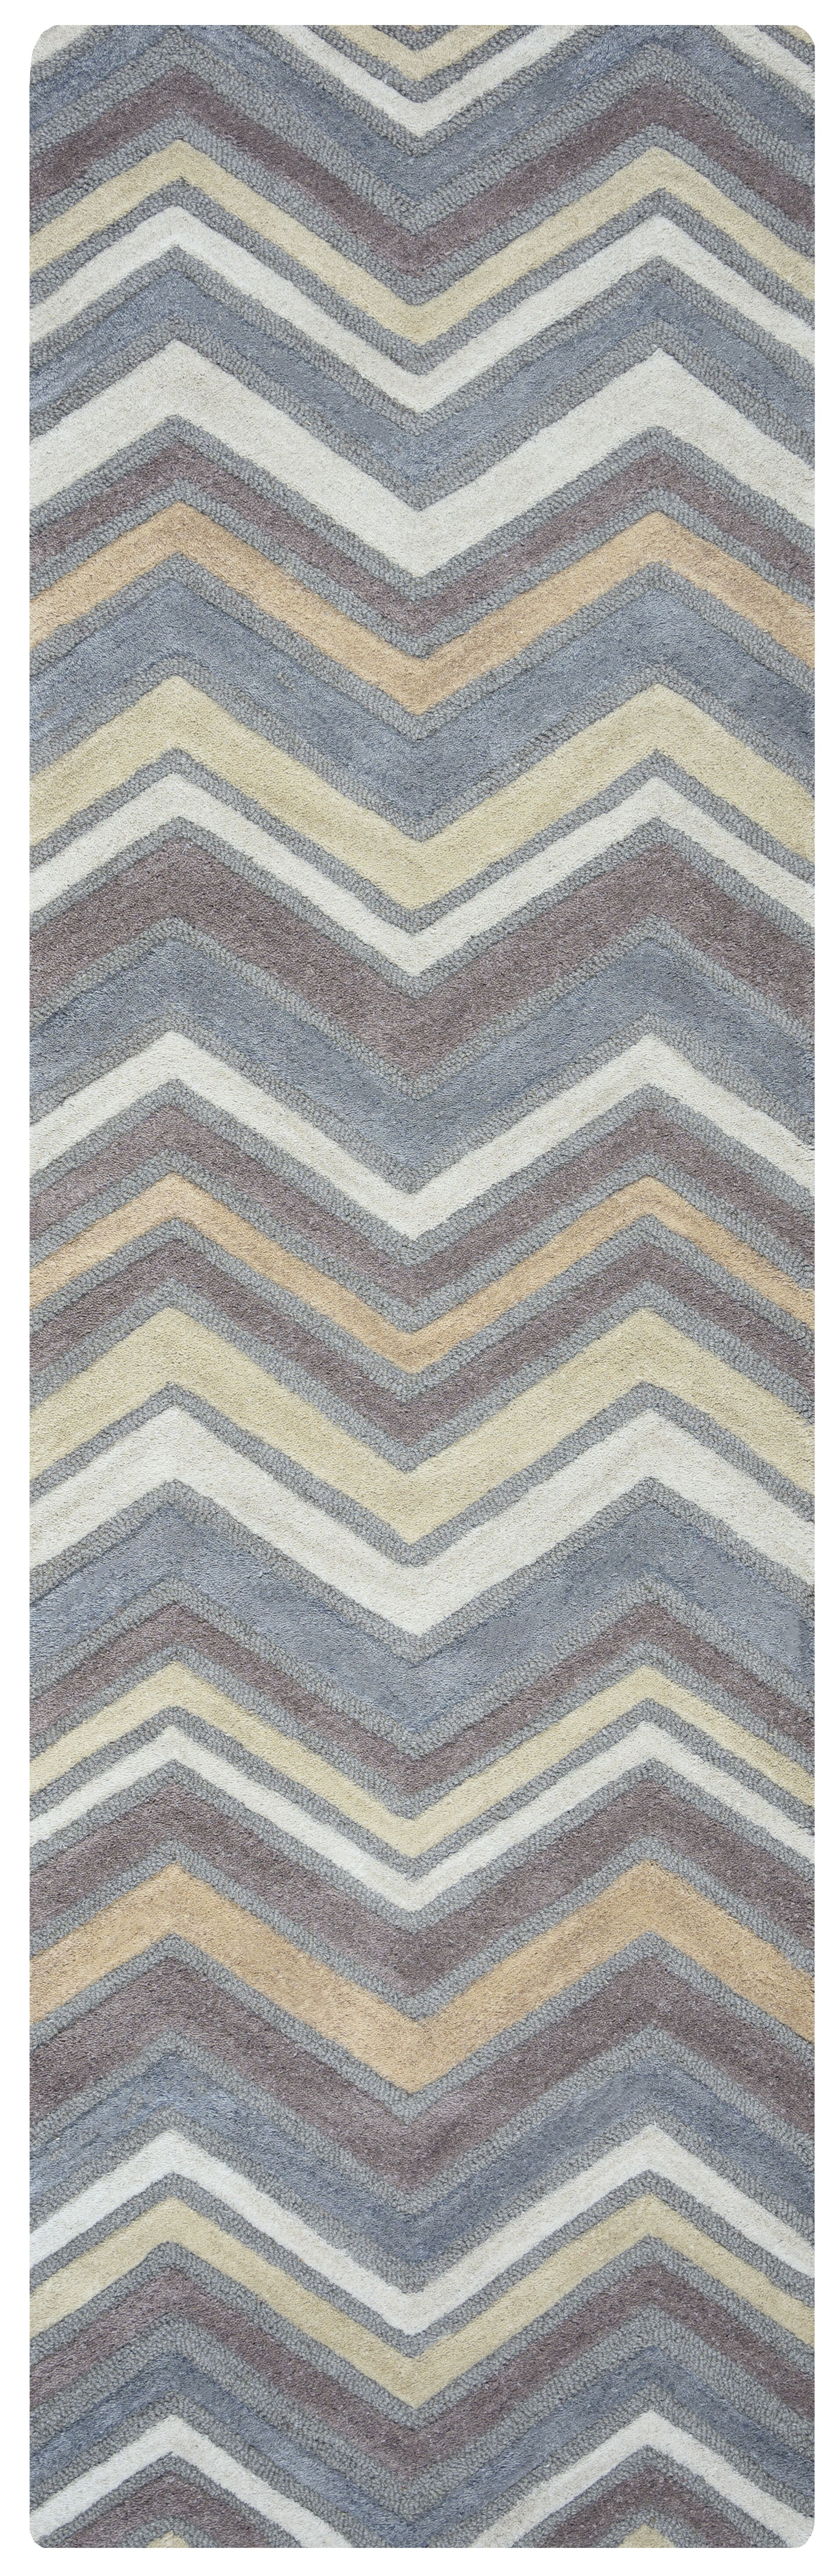 Eilidh Hand-Tufted Gray Area Rug Rug Size: Runner 2'6